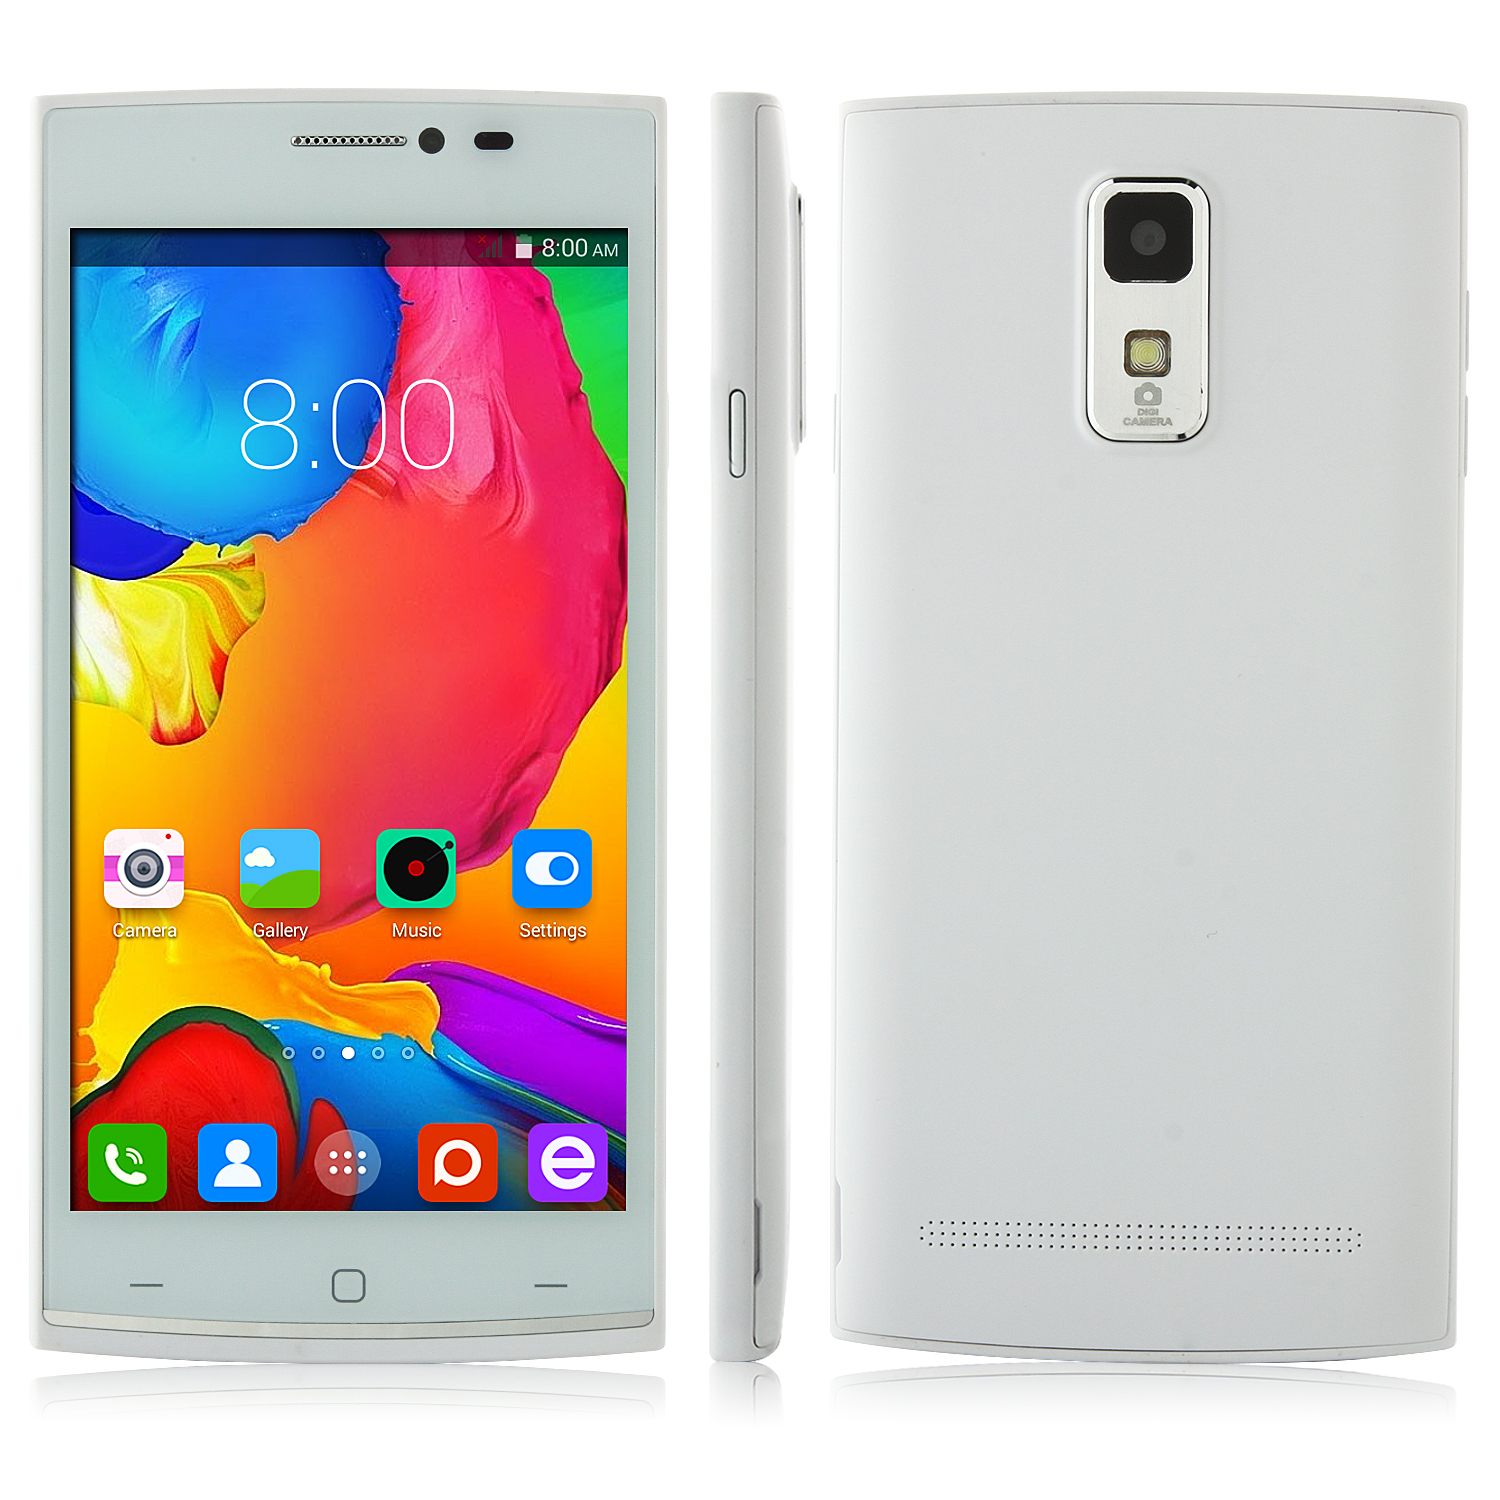 L11 Smartphone Android 4.4 MTK6582 Quad Core 5.0 Inch QHD Screen White